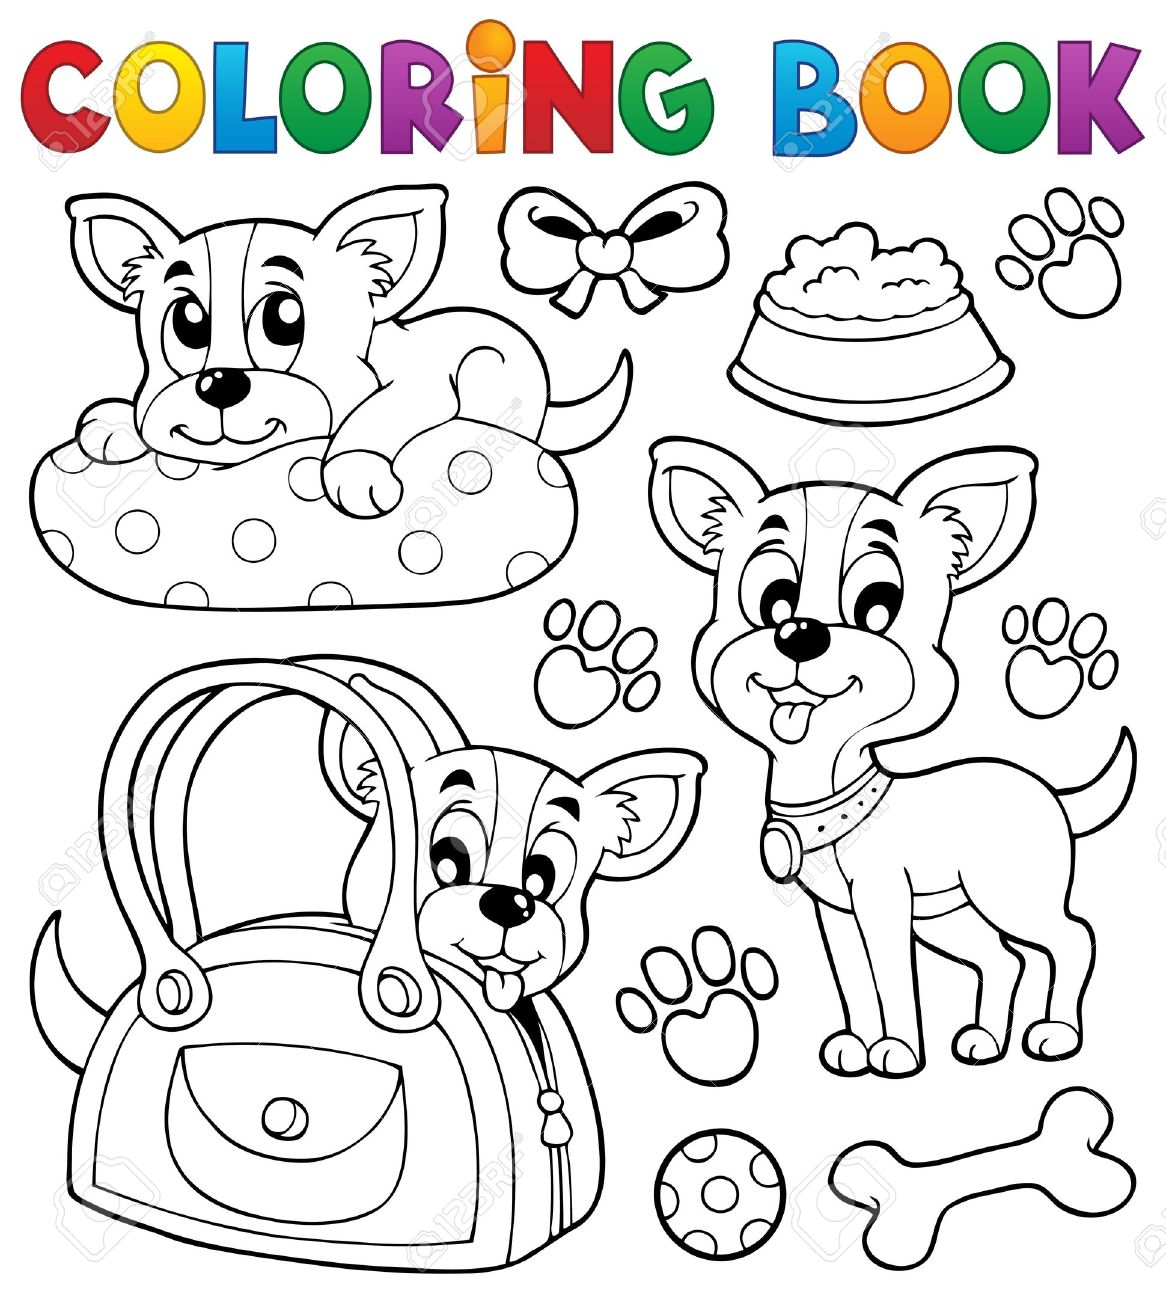 coloring book dog theme royalty free cliparts vectors and stock